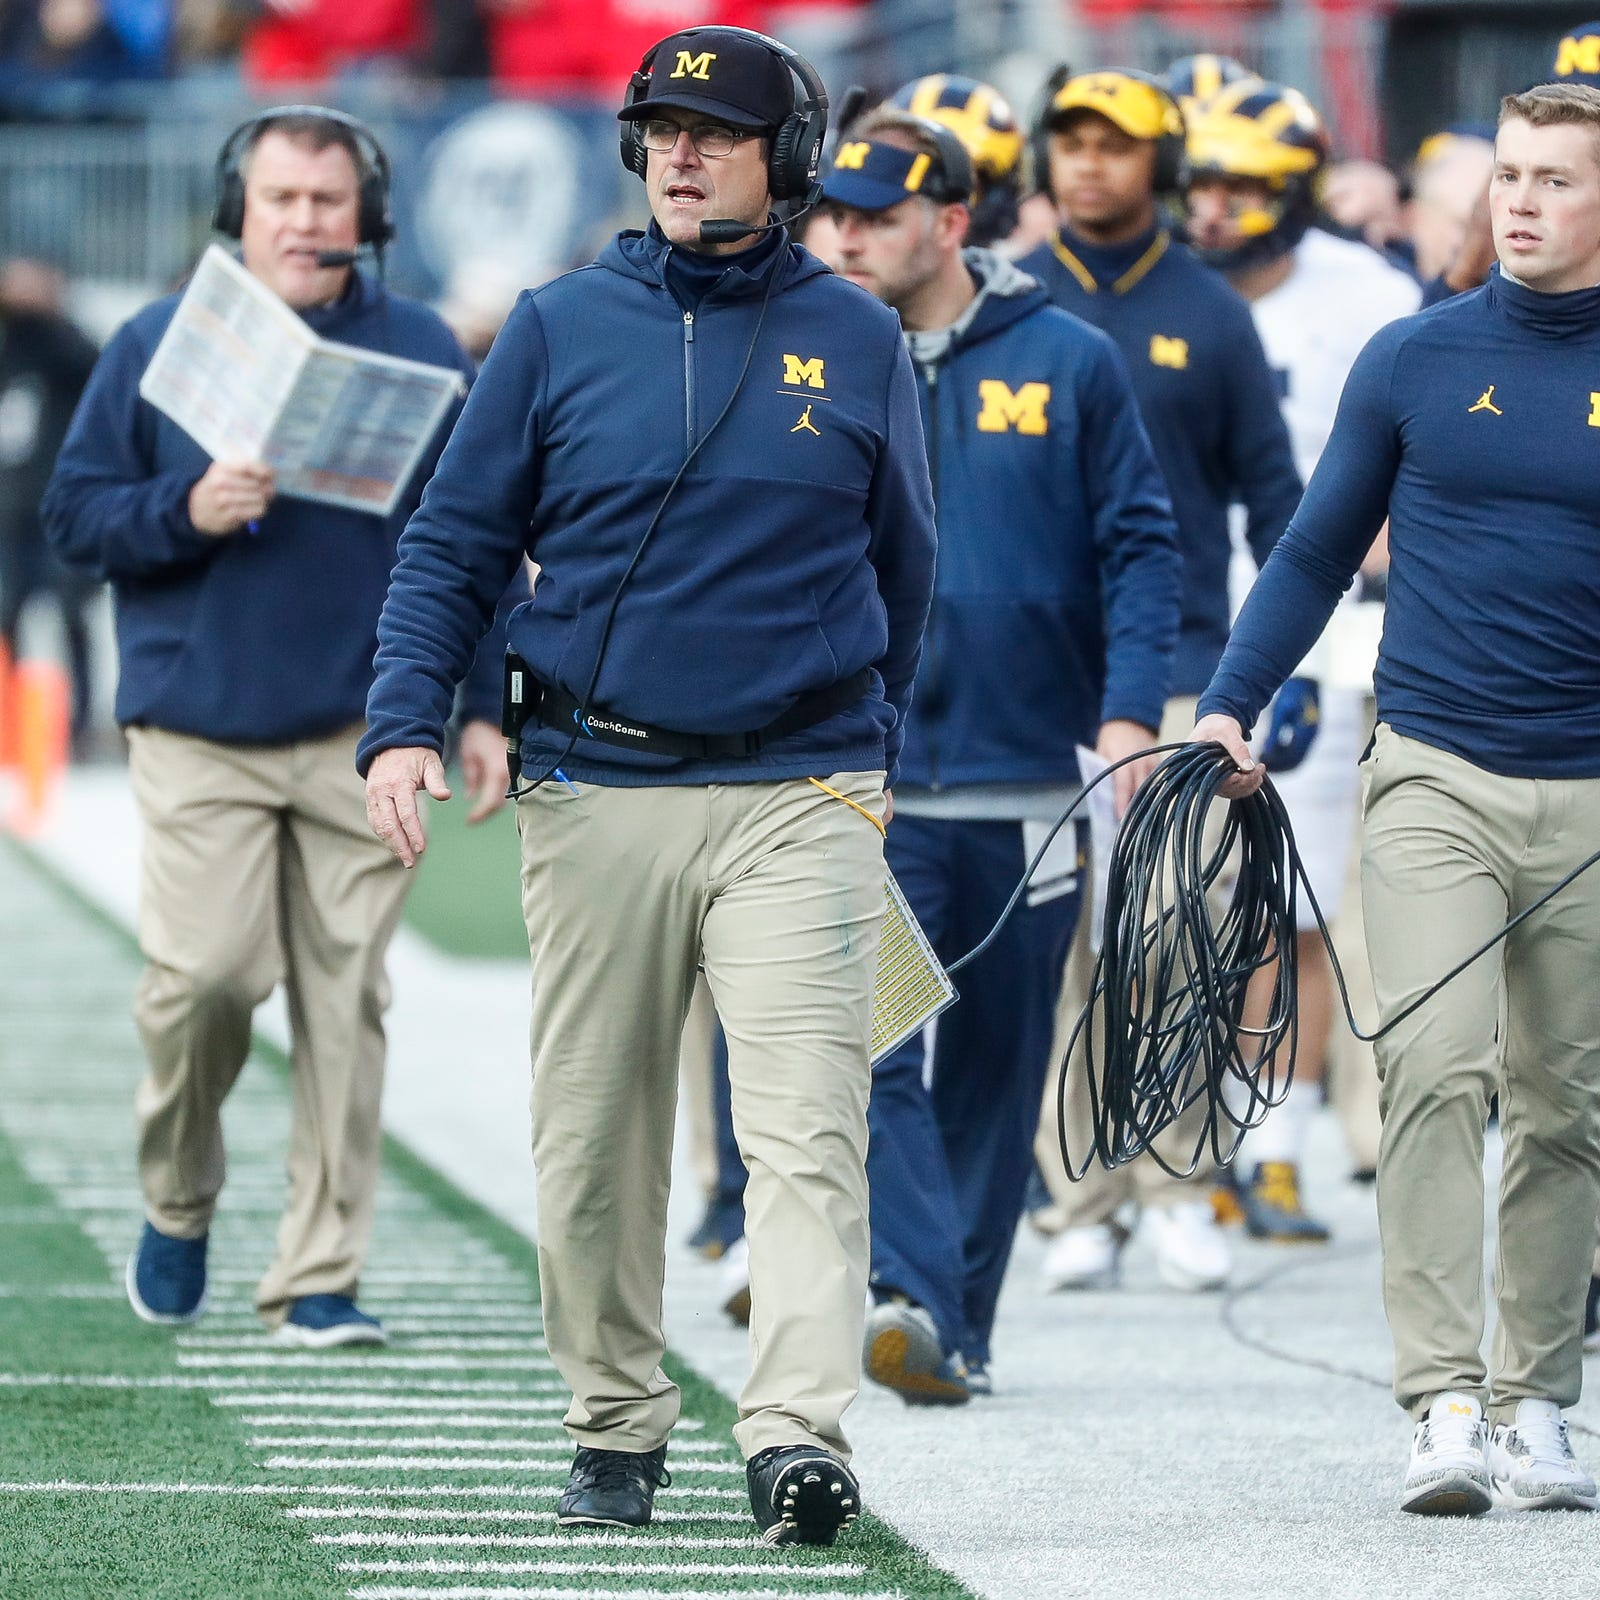 Jim Harbaugh promises fast tempo, less huddle for Michigan football offense